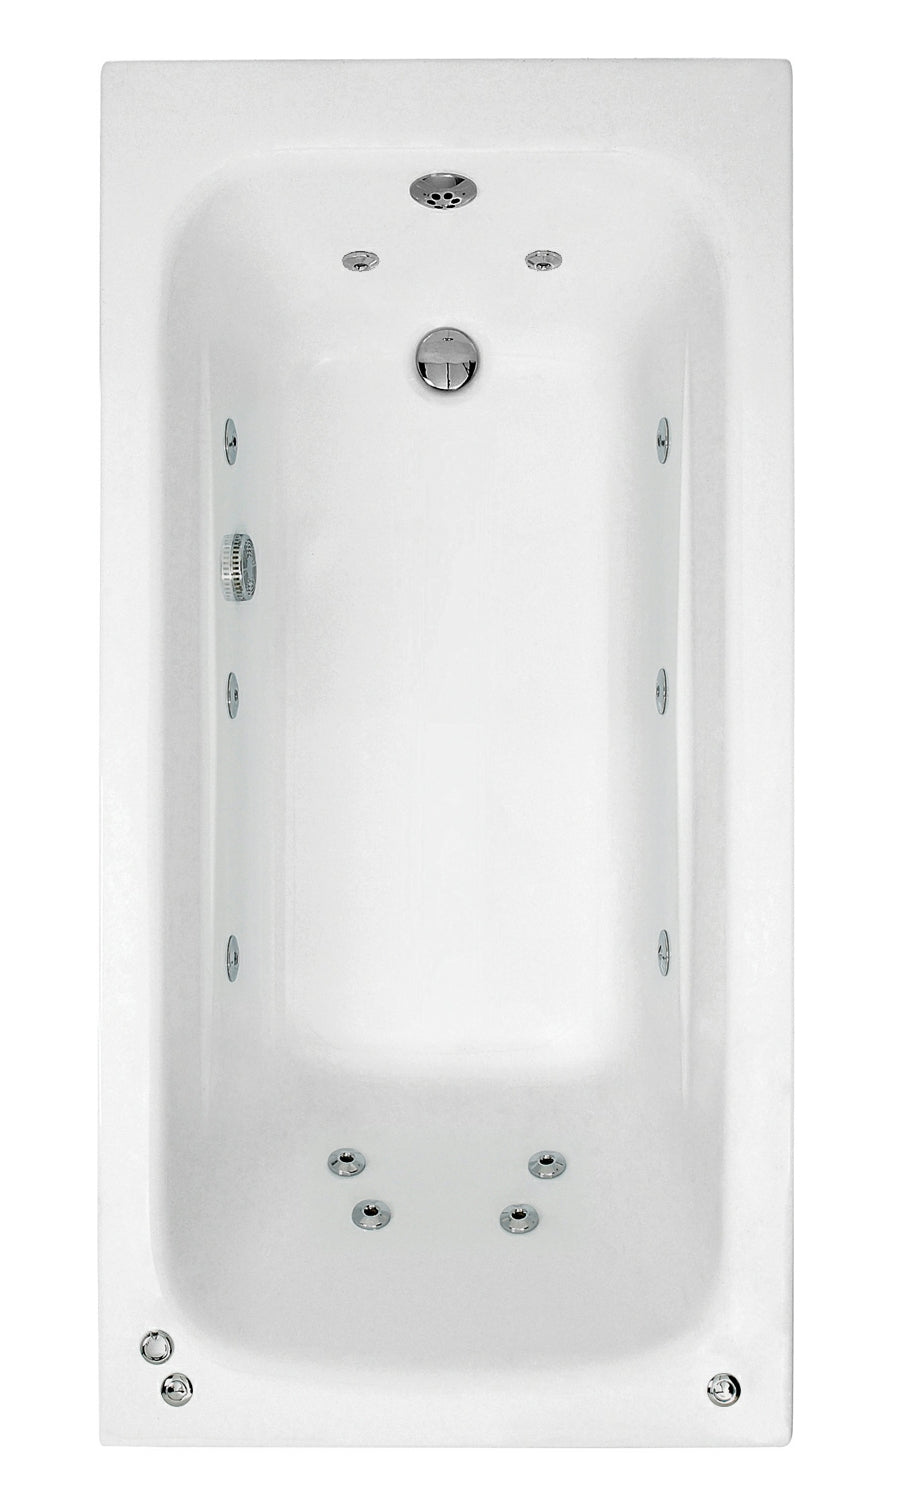 Phoenix Crystal - Single Ended Whirlpool Bath 1600 x 700mm - System 1 - BH063S1